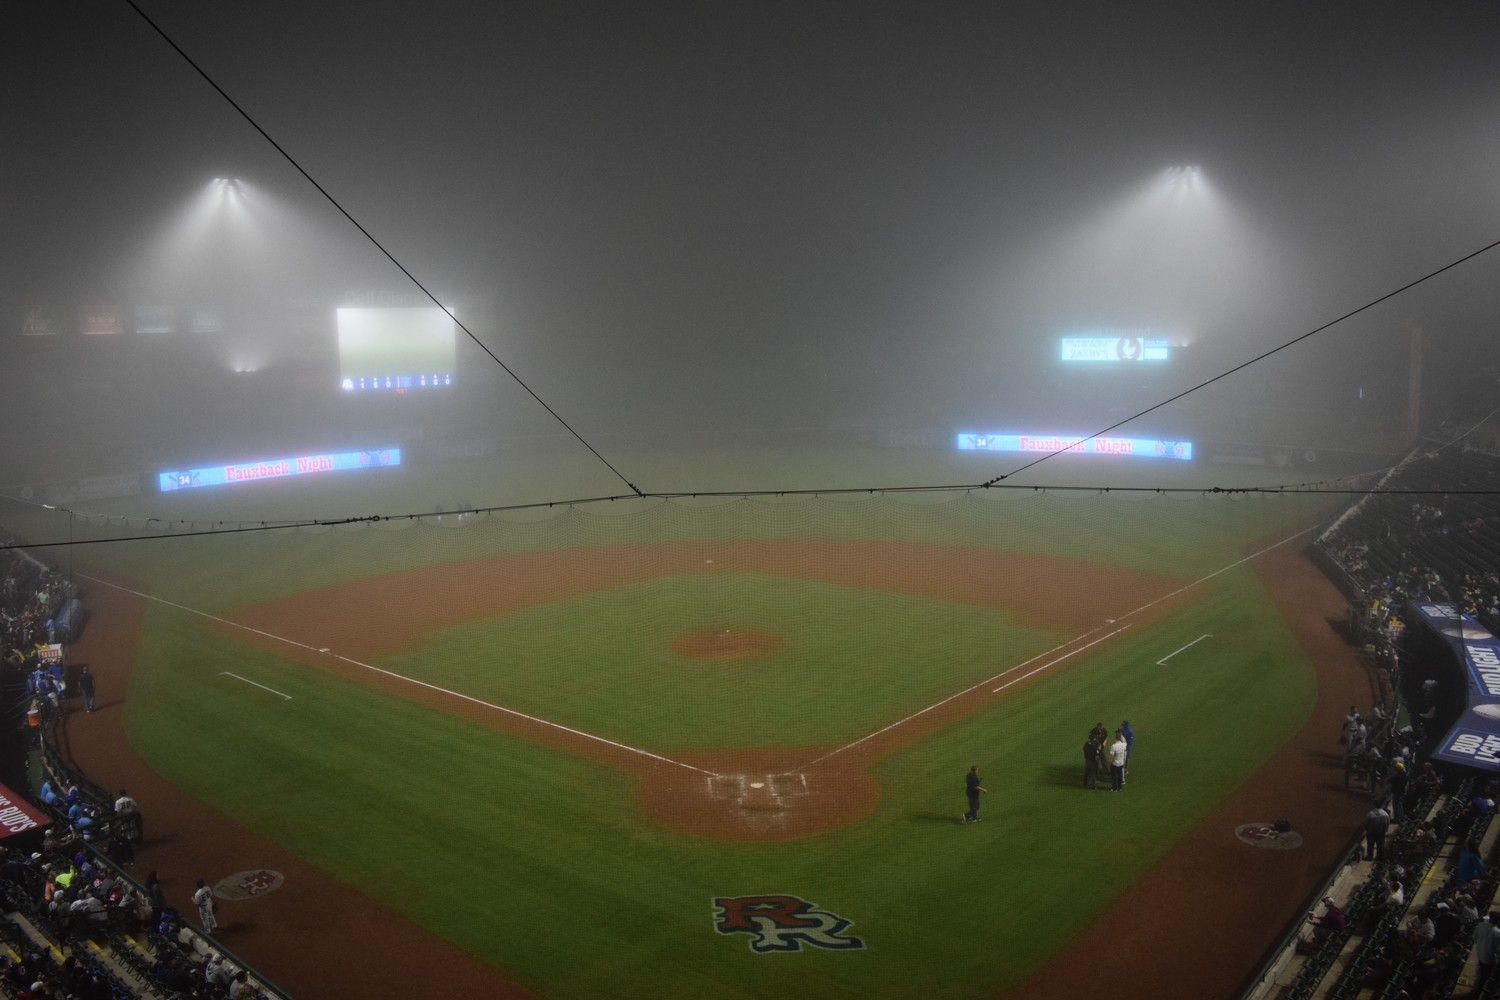 Dense fog delayed the Express game agaisnt the Colorado Springs Sky Sox for more than 30 minutes during the eighth inning on Saturday. Round Rock won 6-1.